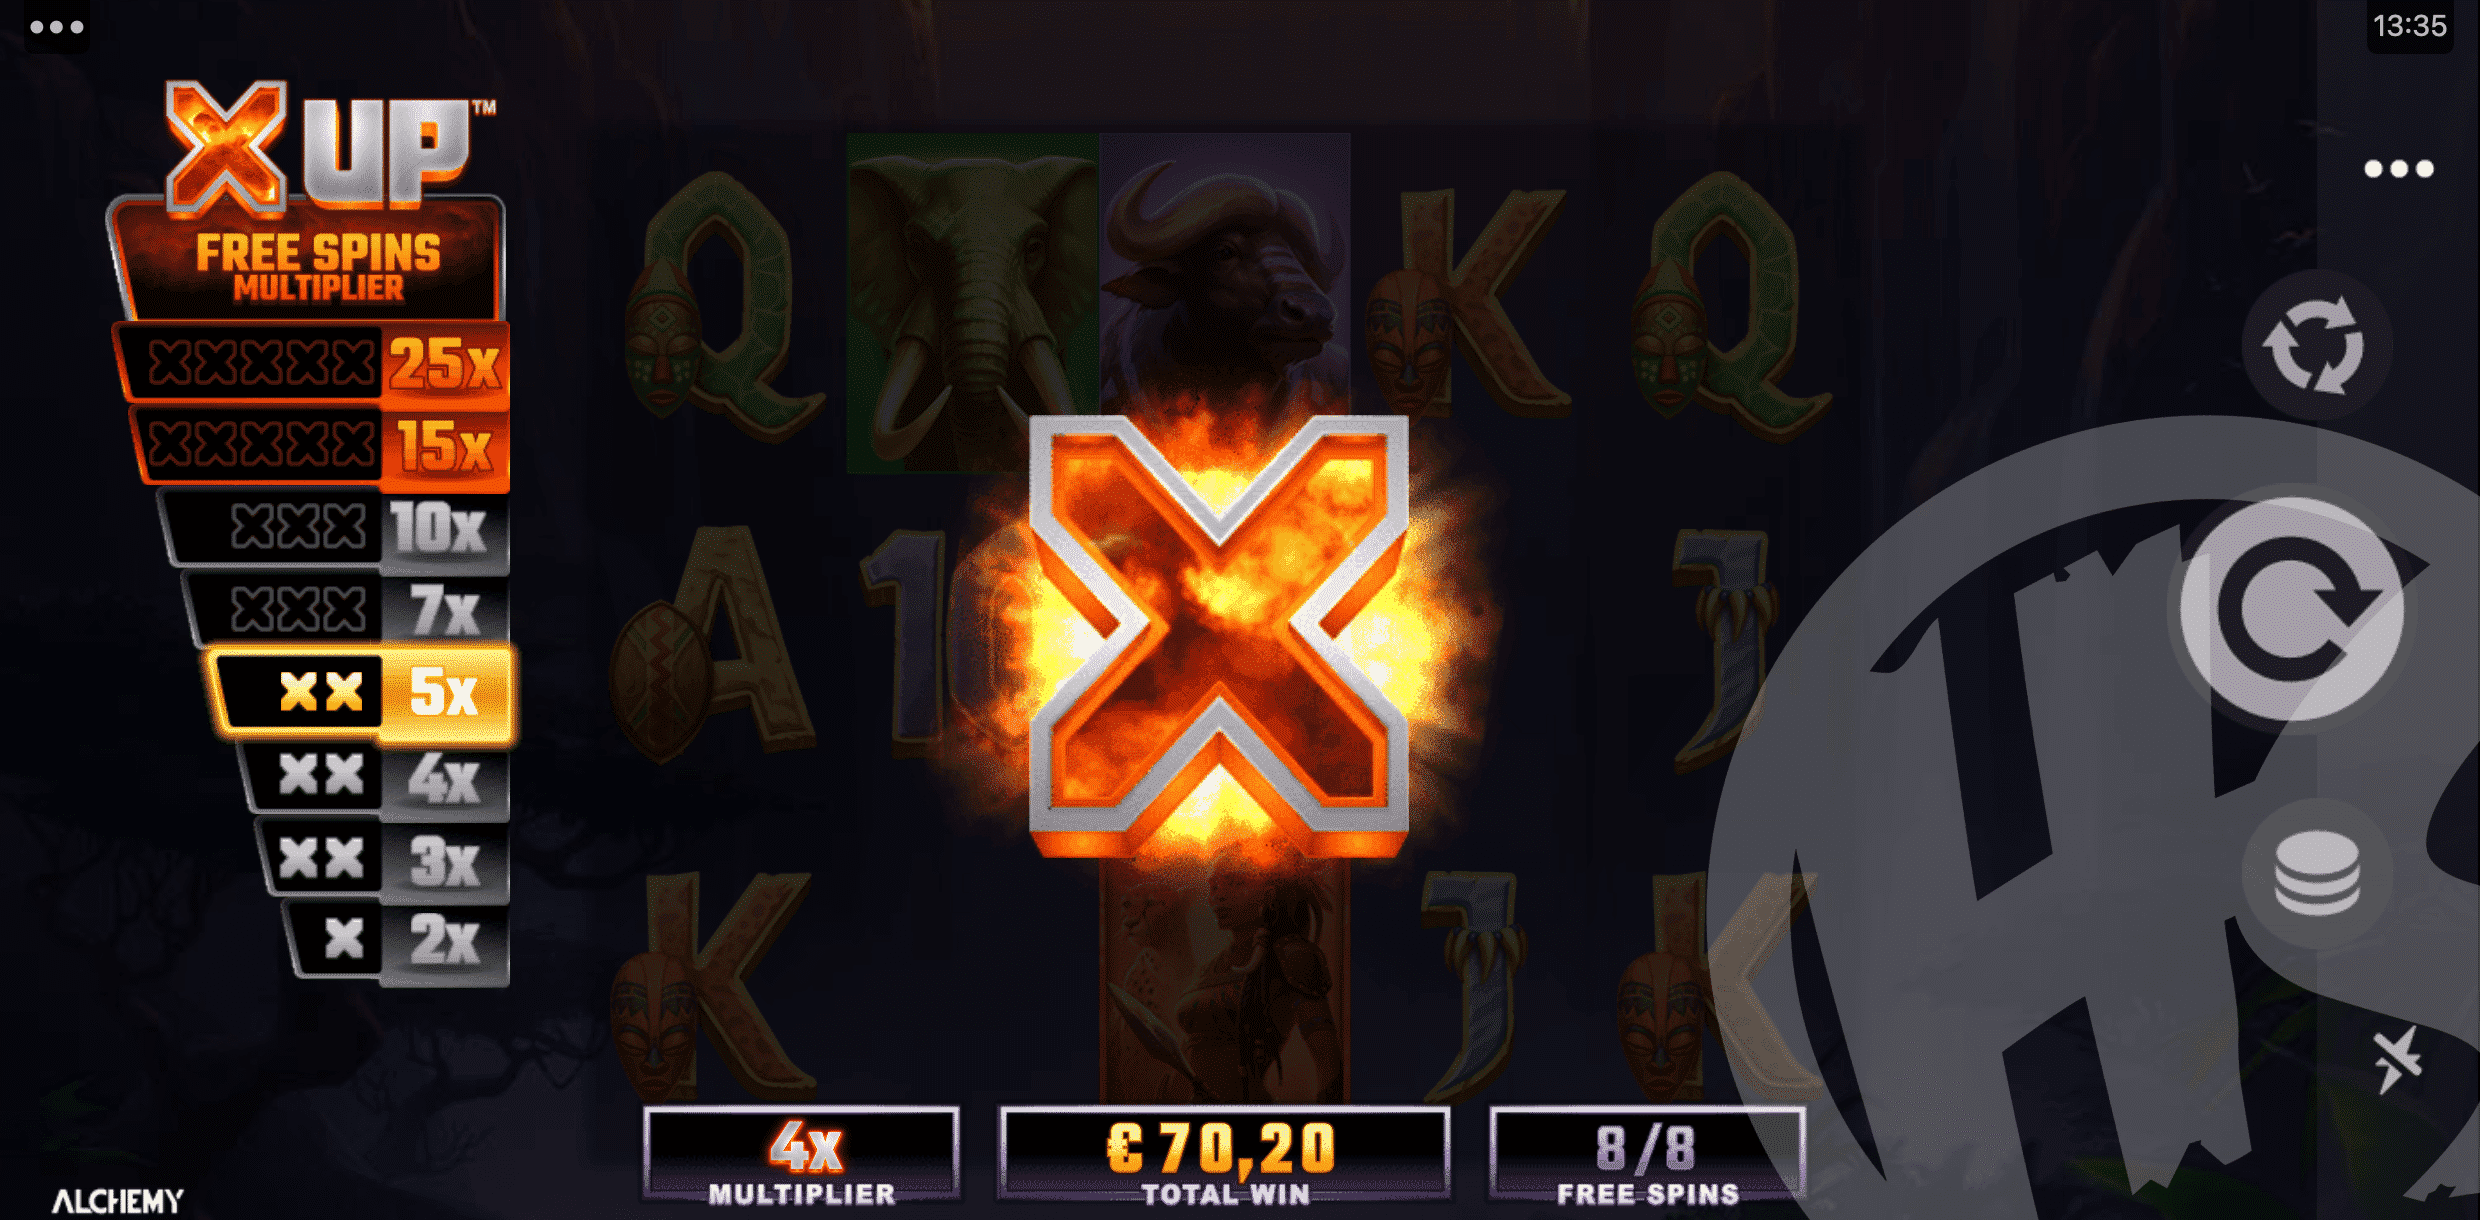 X UP Tokens Are Collected During Free Spins